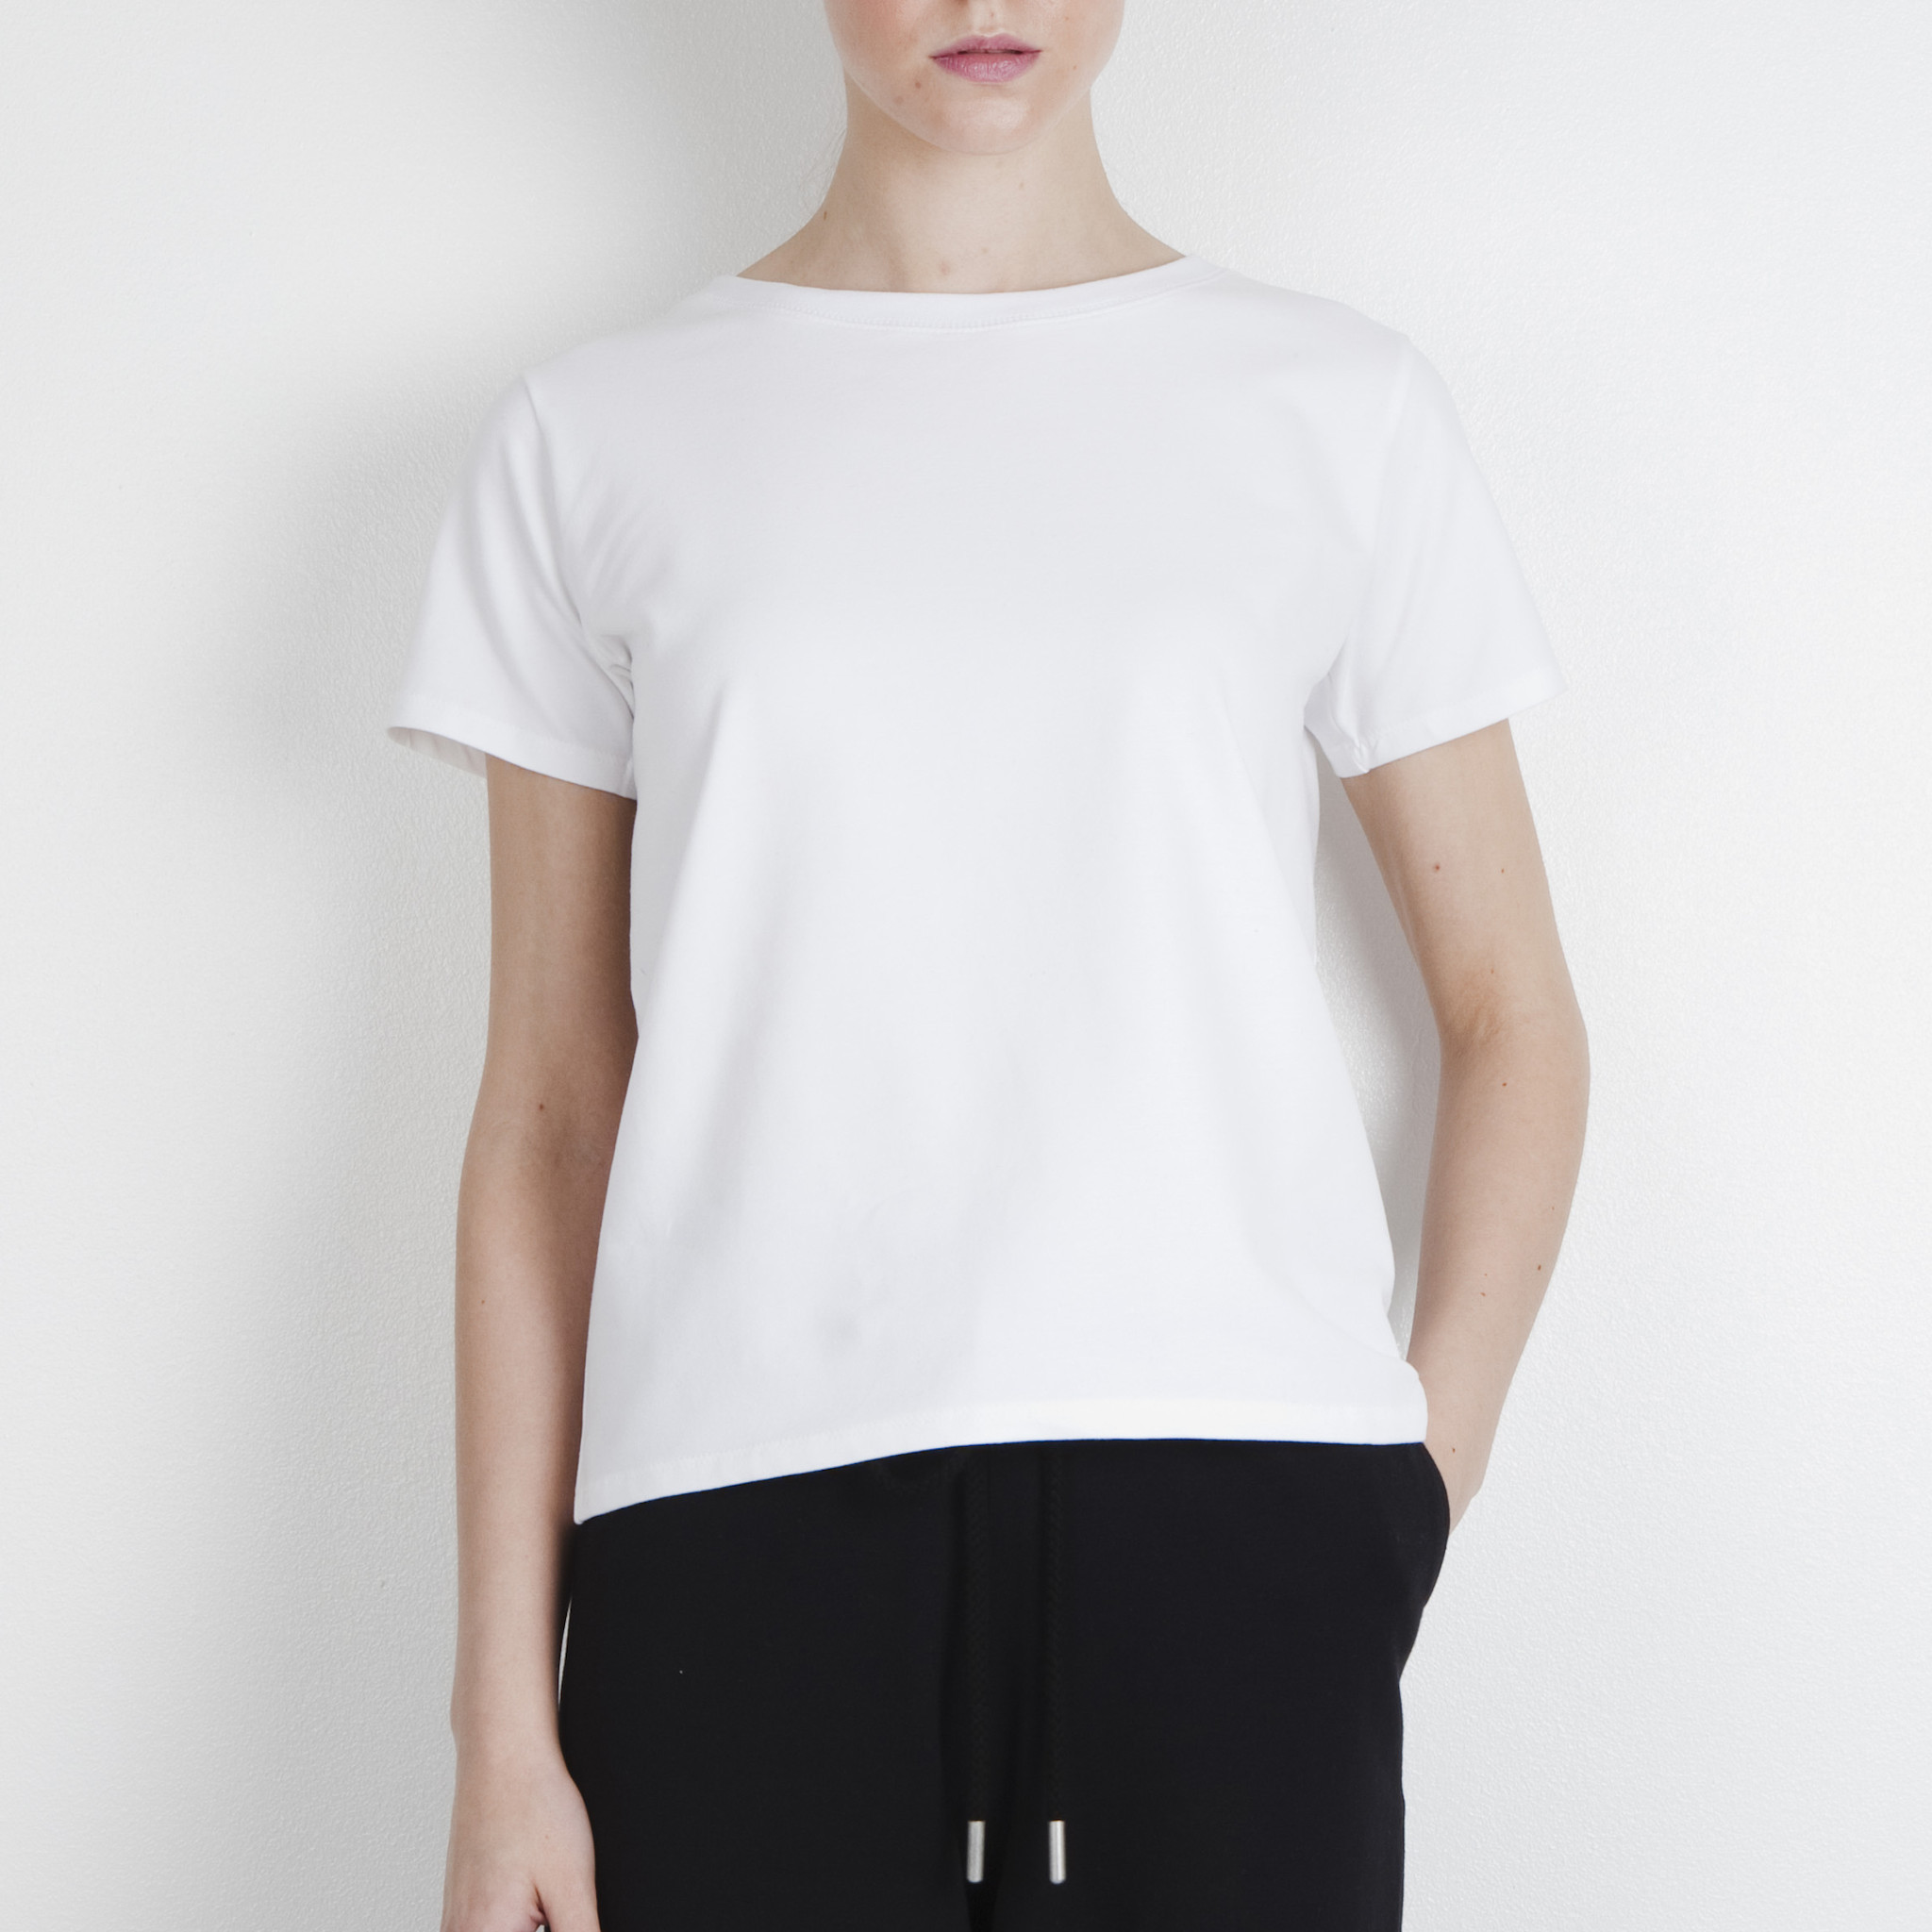 Arela_Cotton_Kim_T-shirt_Helsinki_White_FP_2048x2048